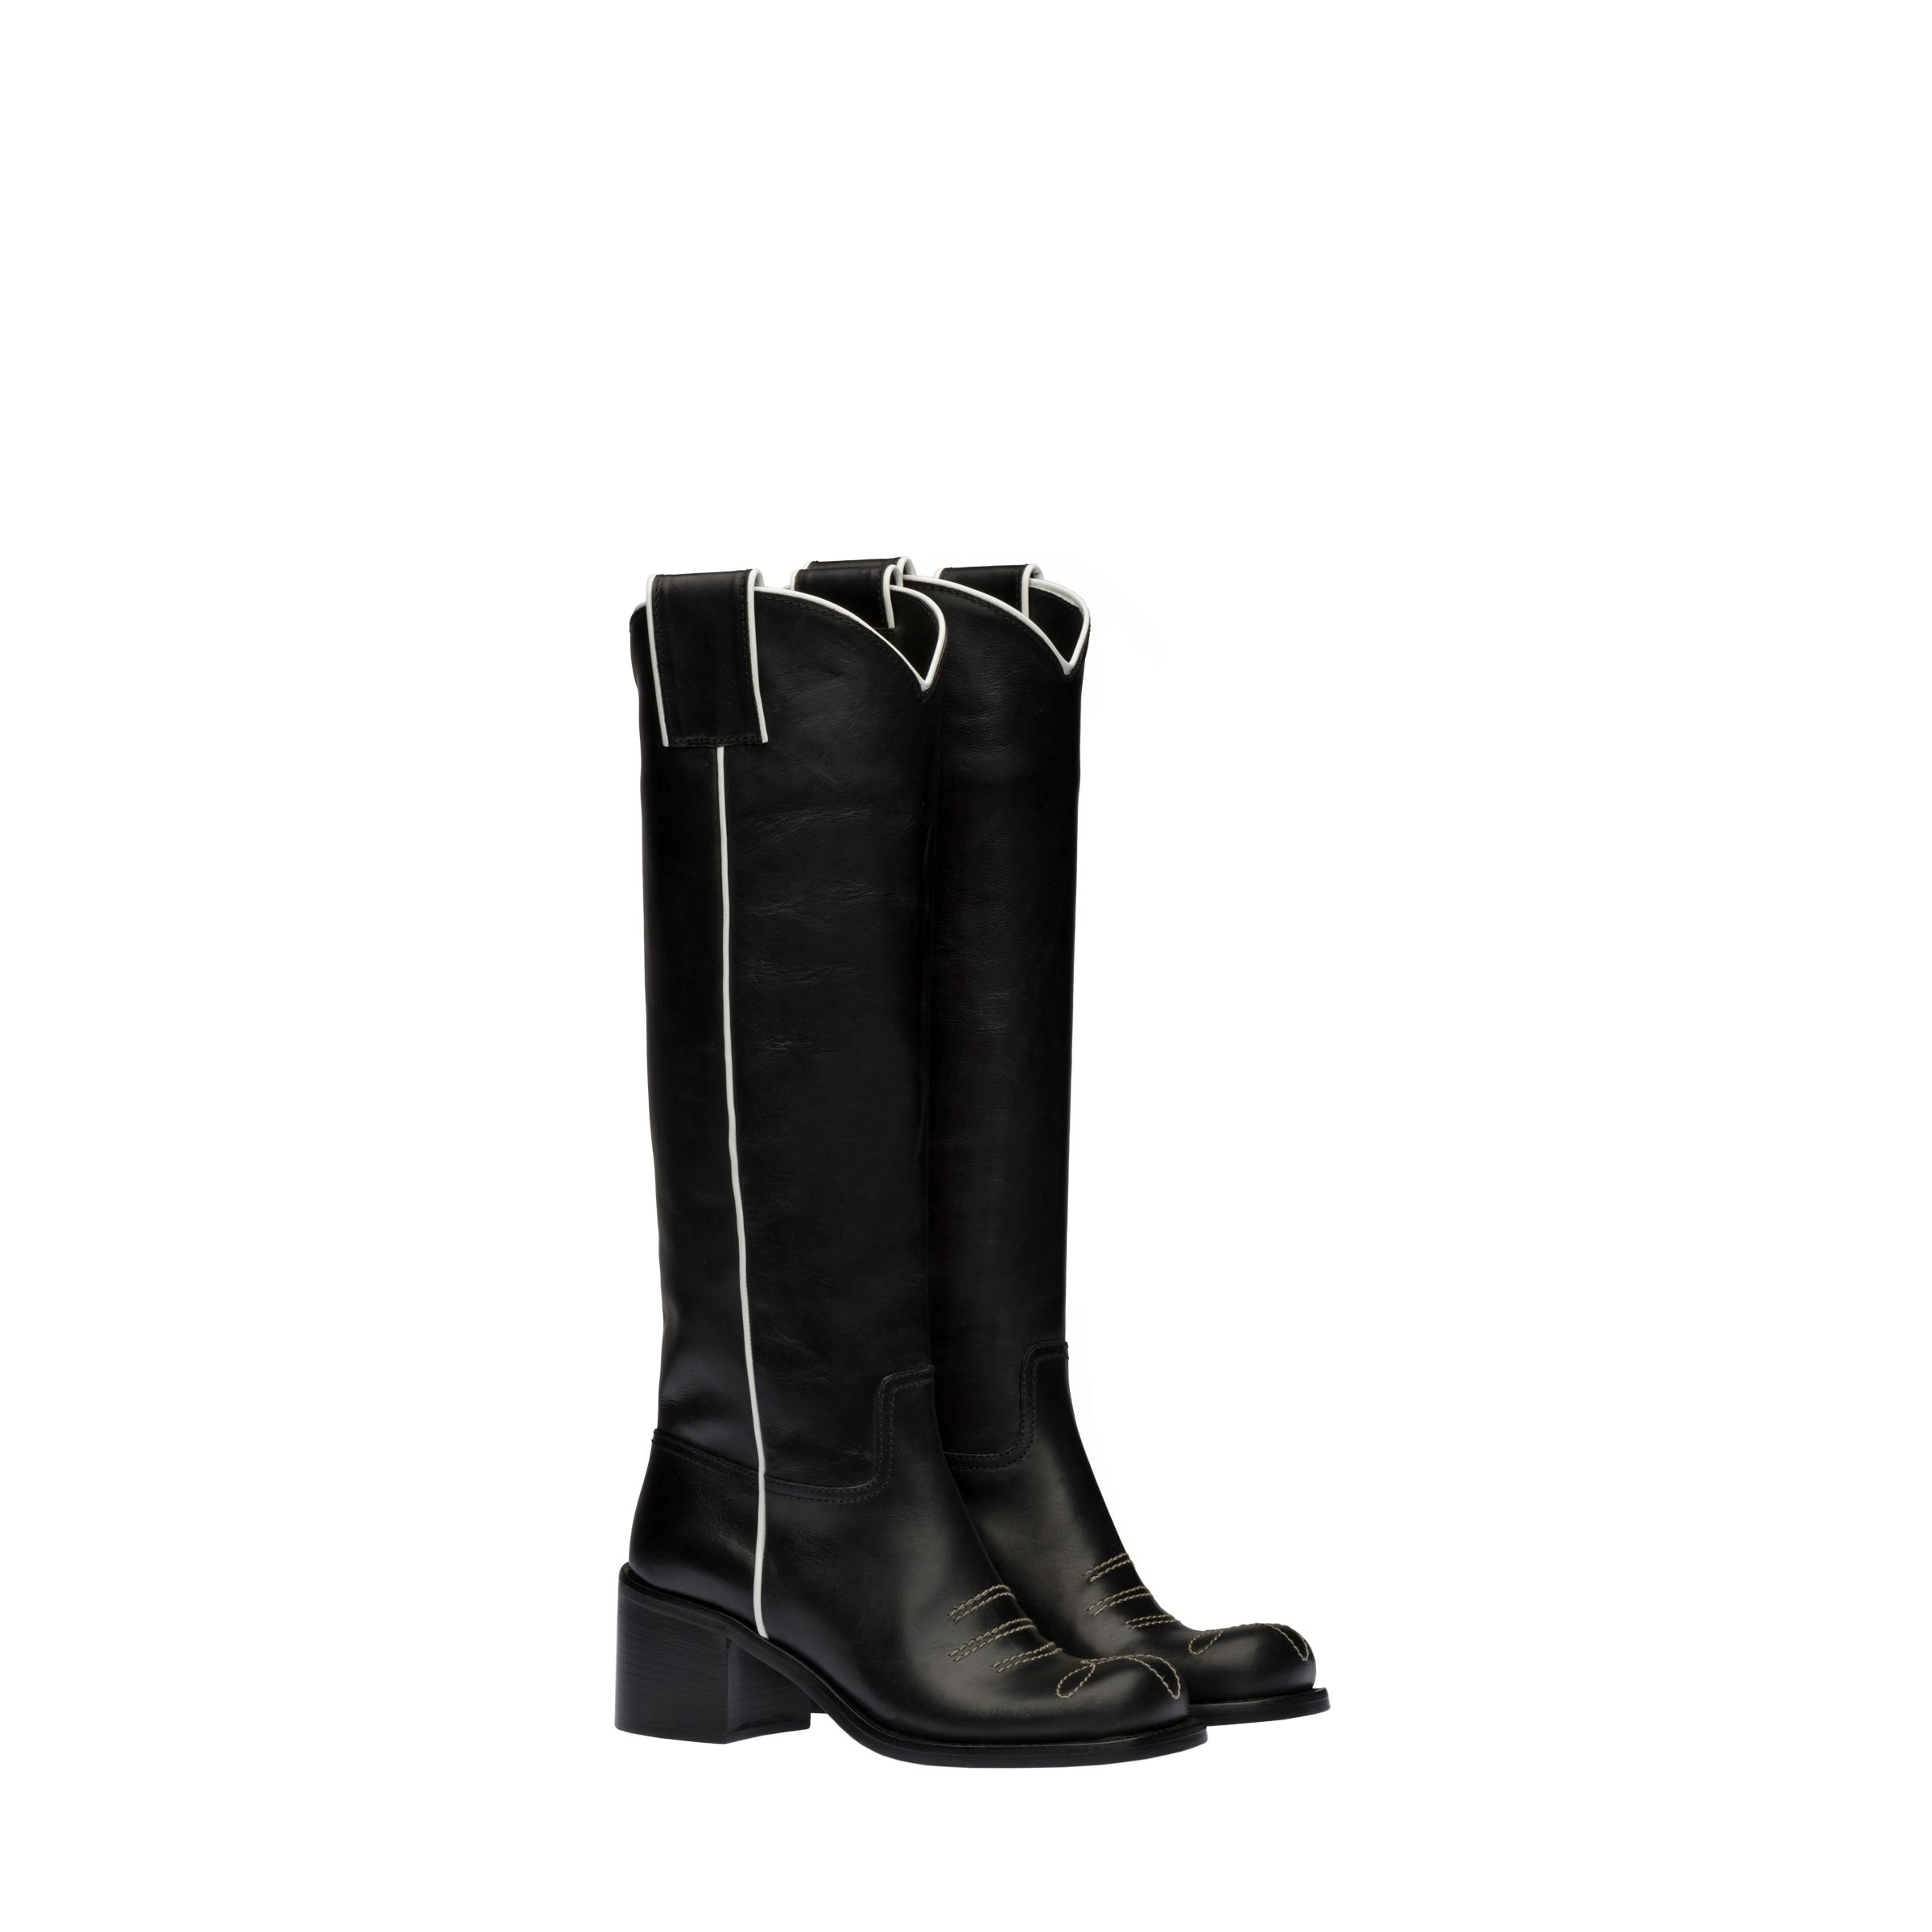 Leather Boots Women Black/white